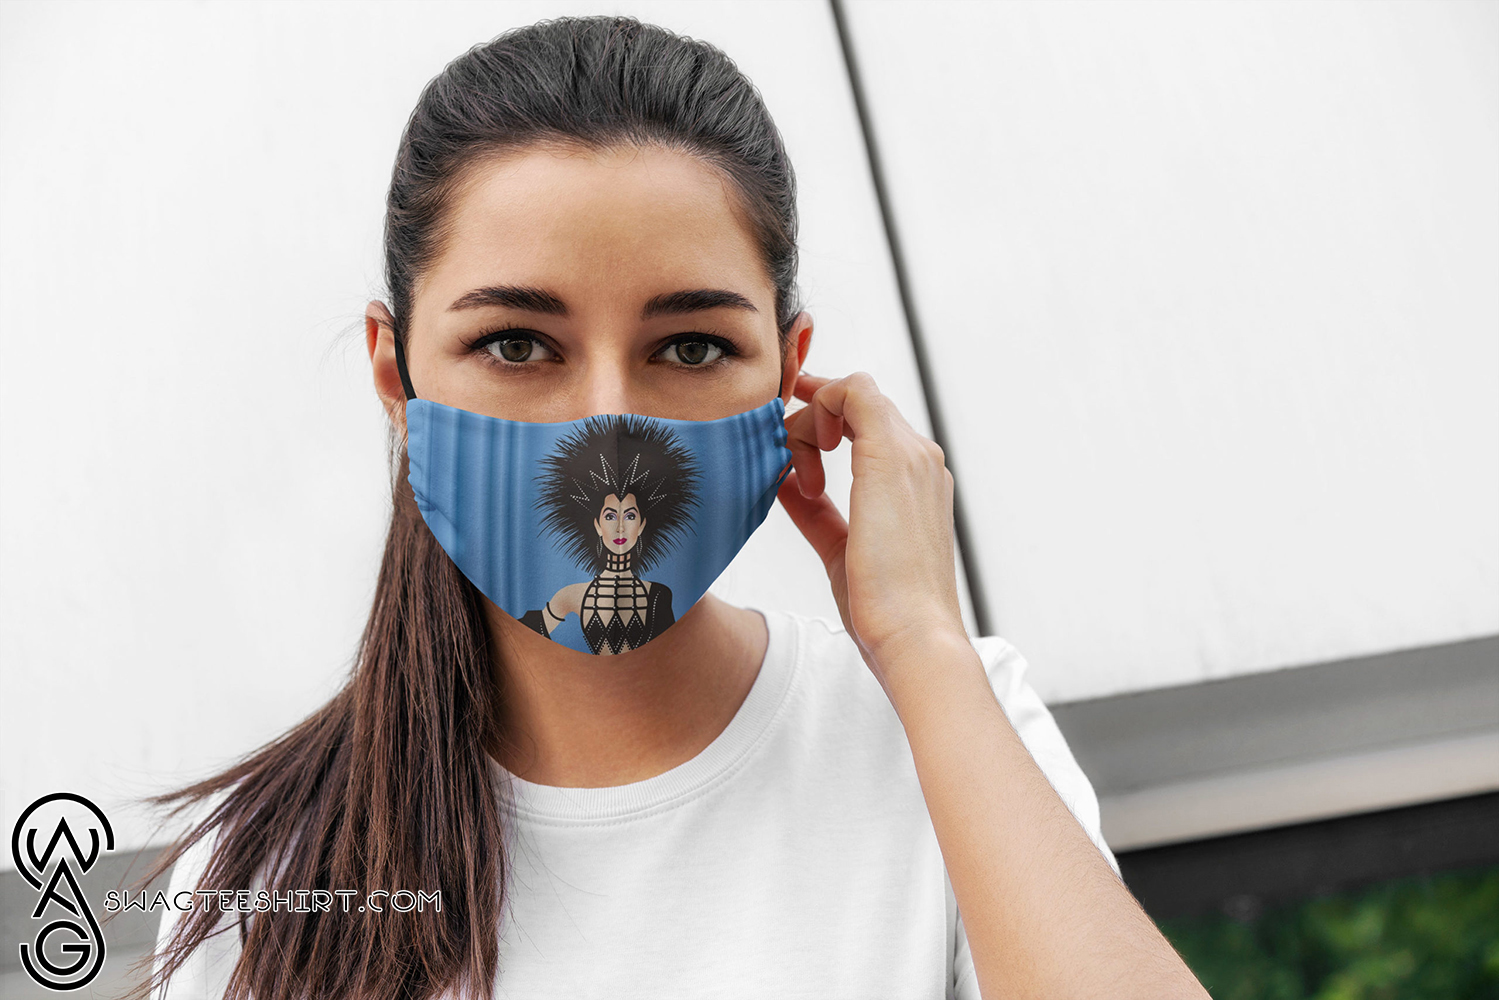 [special edition] Cherilyn sarkisian cher all over printed face mask - maria